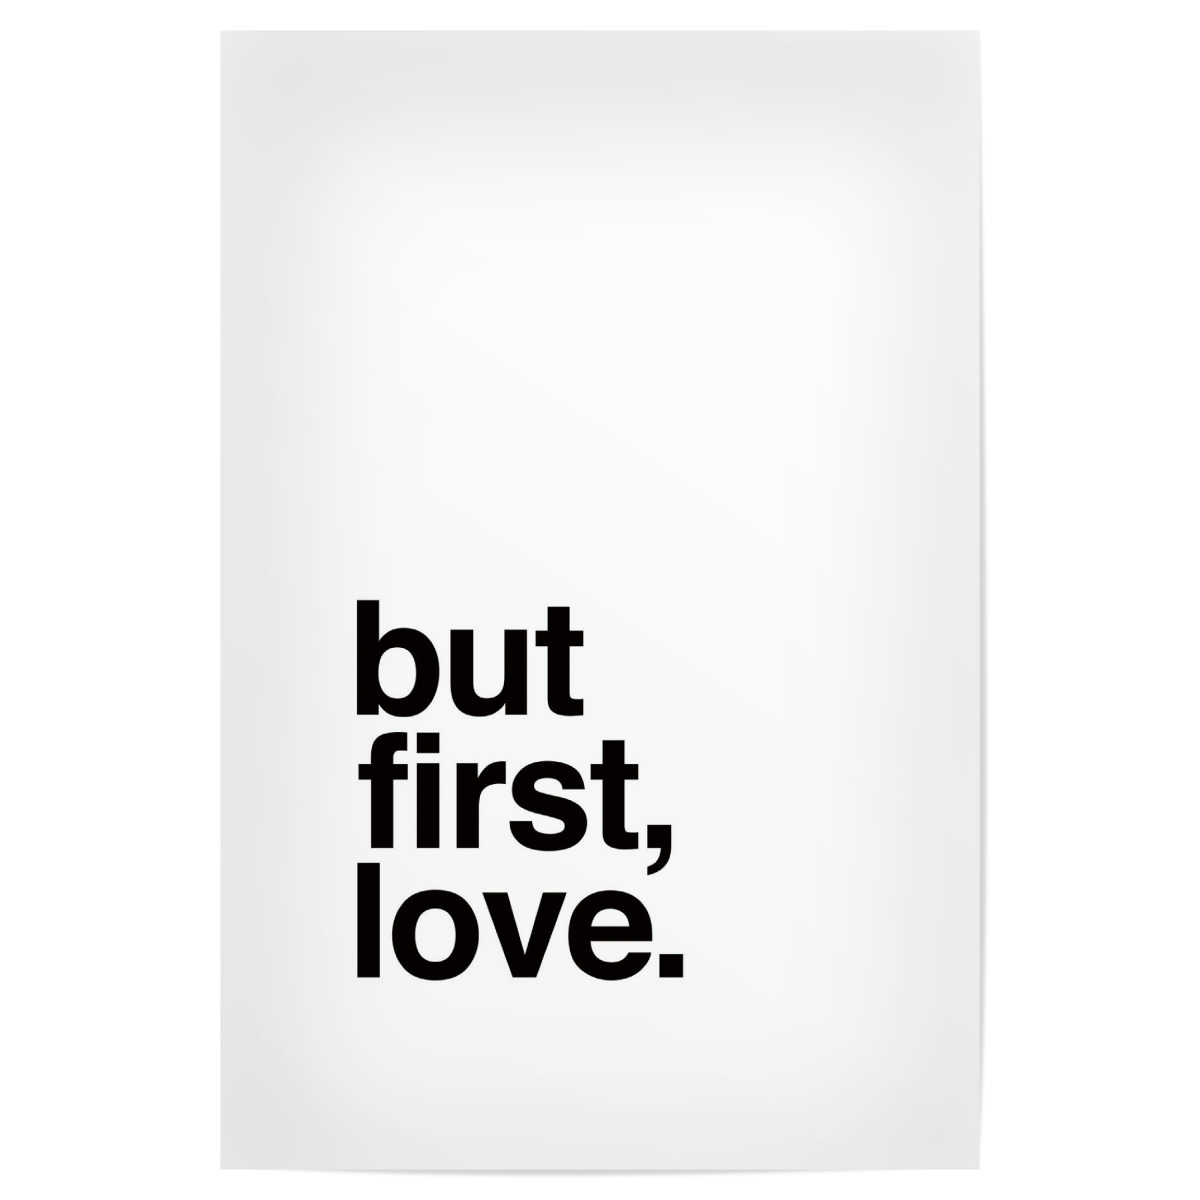 But First Love Als Poster Bei Artboxone Kaufen